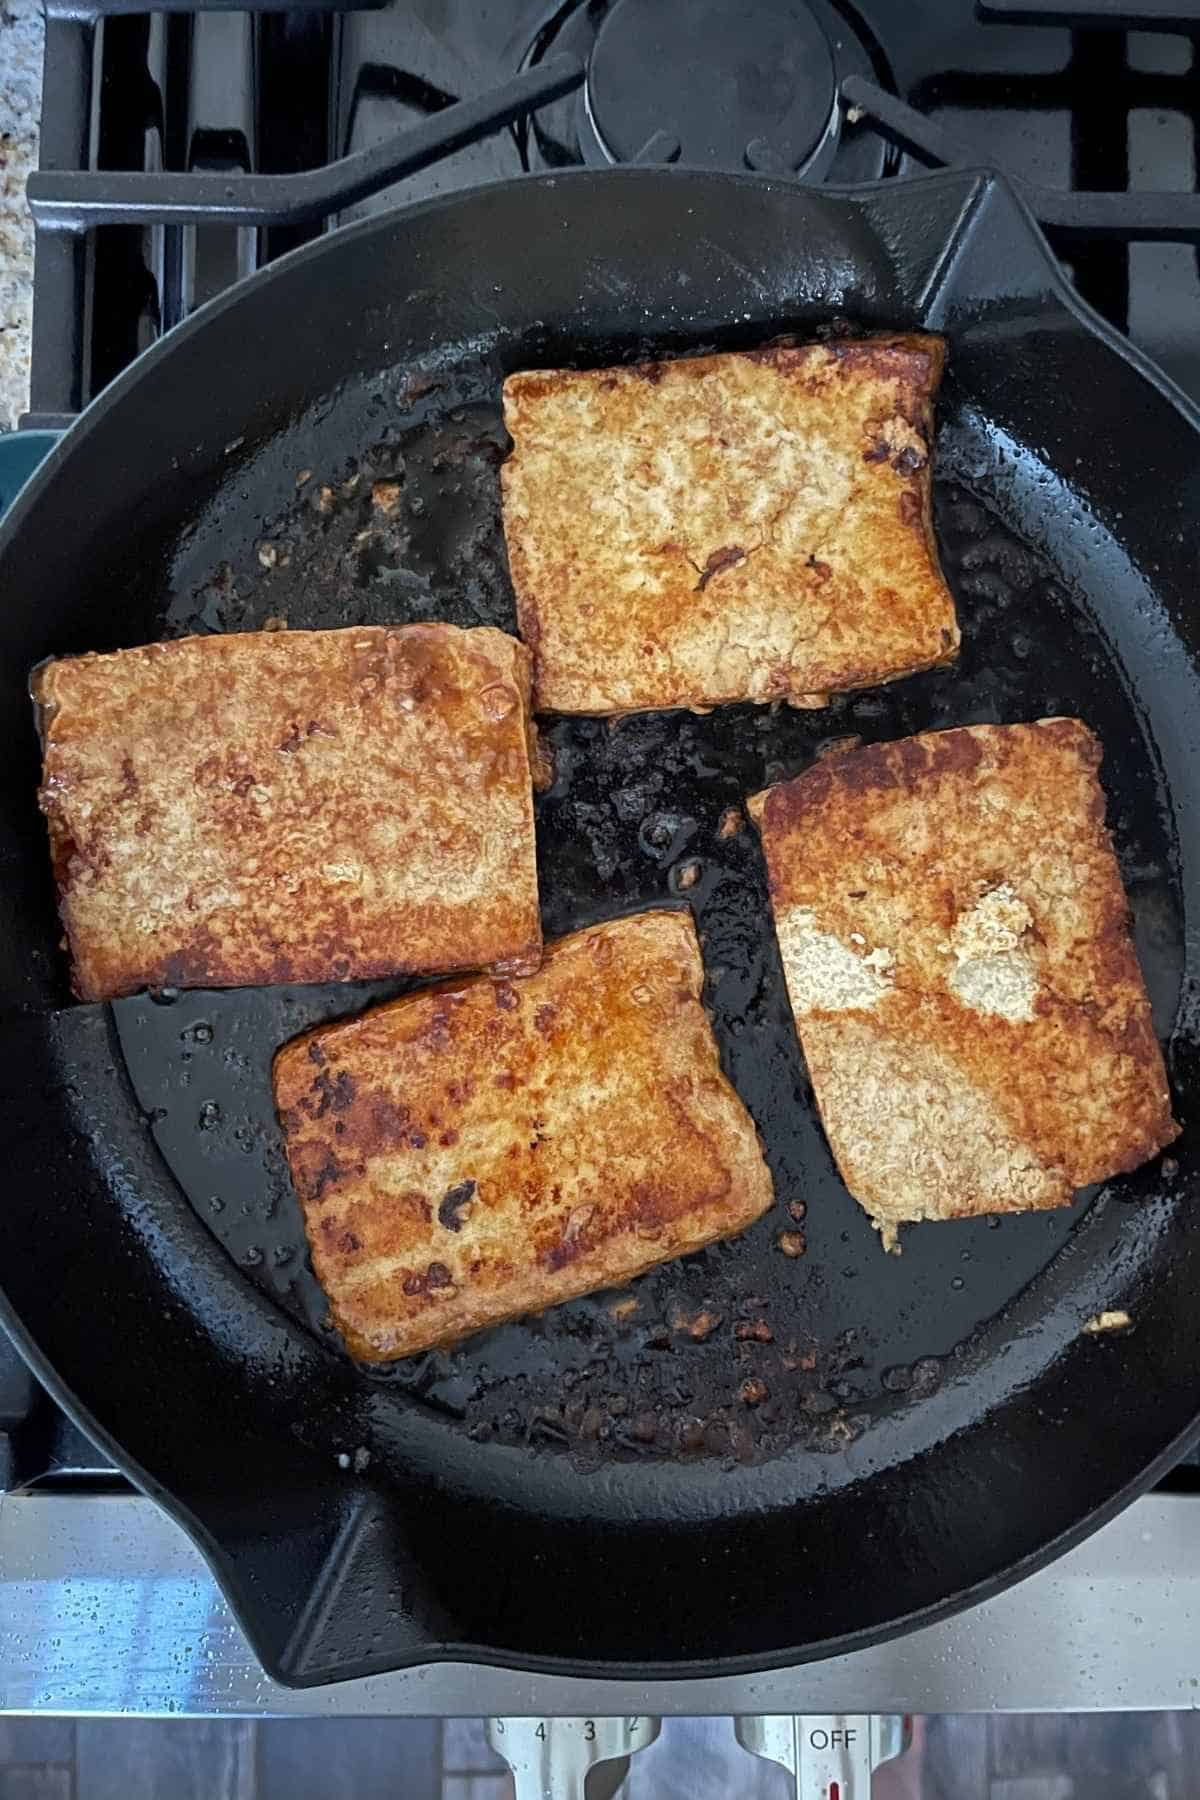 Tofu slices pan frying in large cast iron skillet on stove.